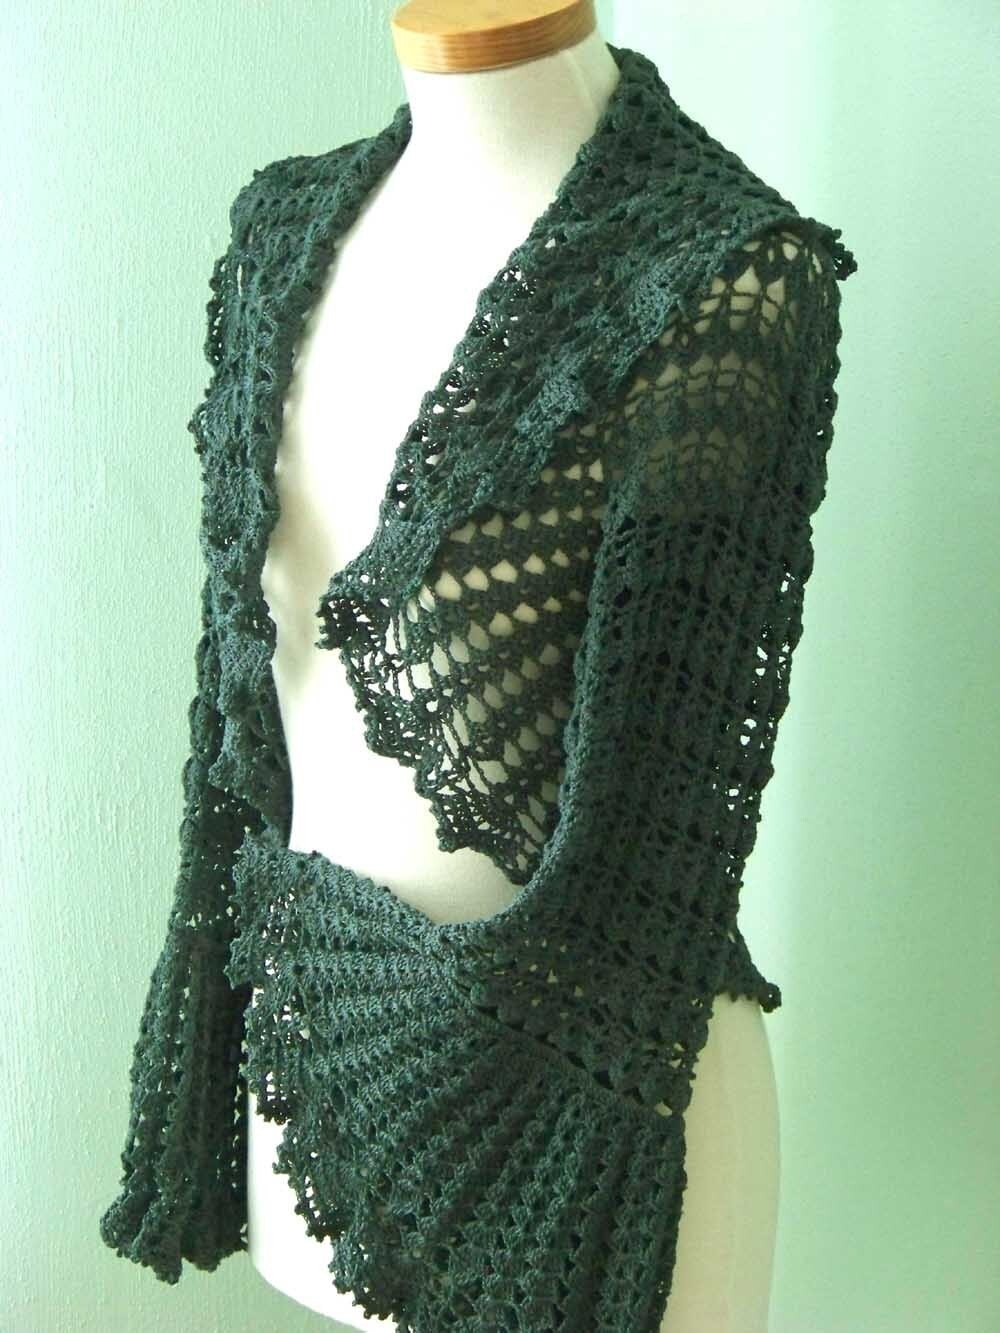 Crochet Shrug Pattern : SHRUG CROCHET PATTERNS Crochet For Beginners